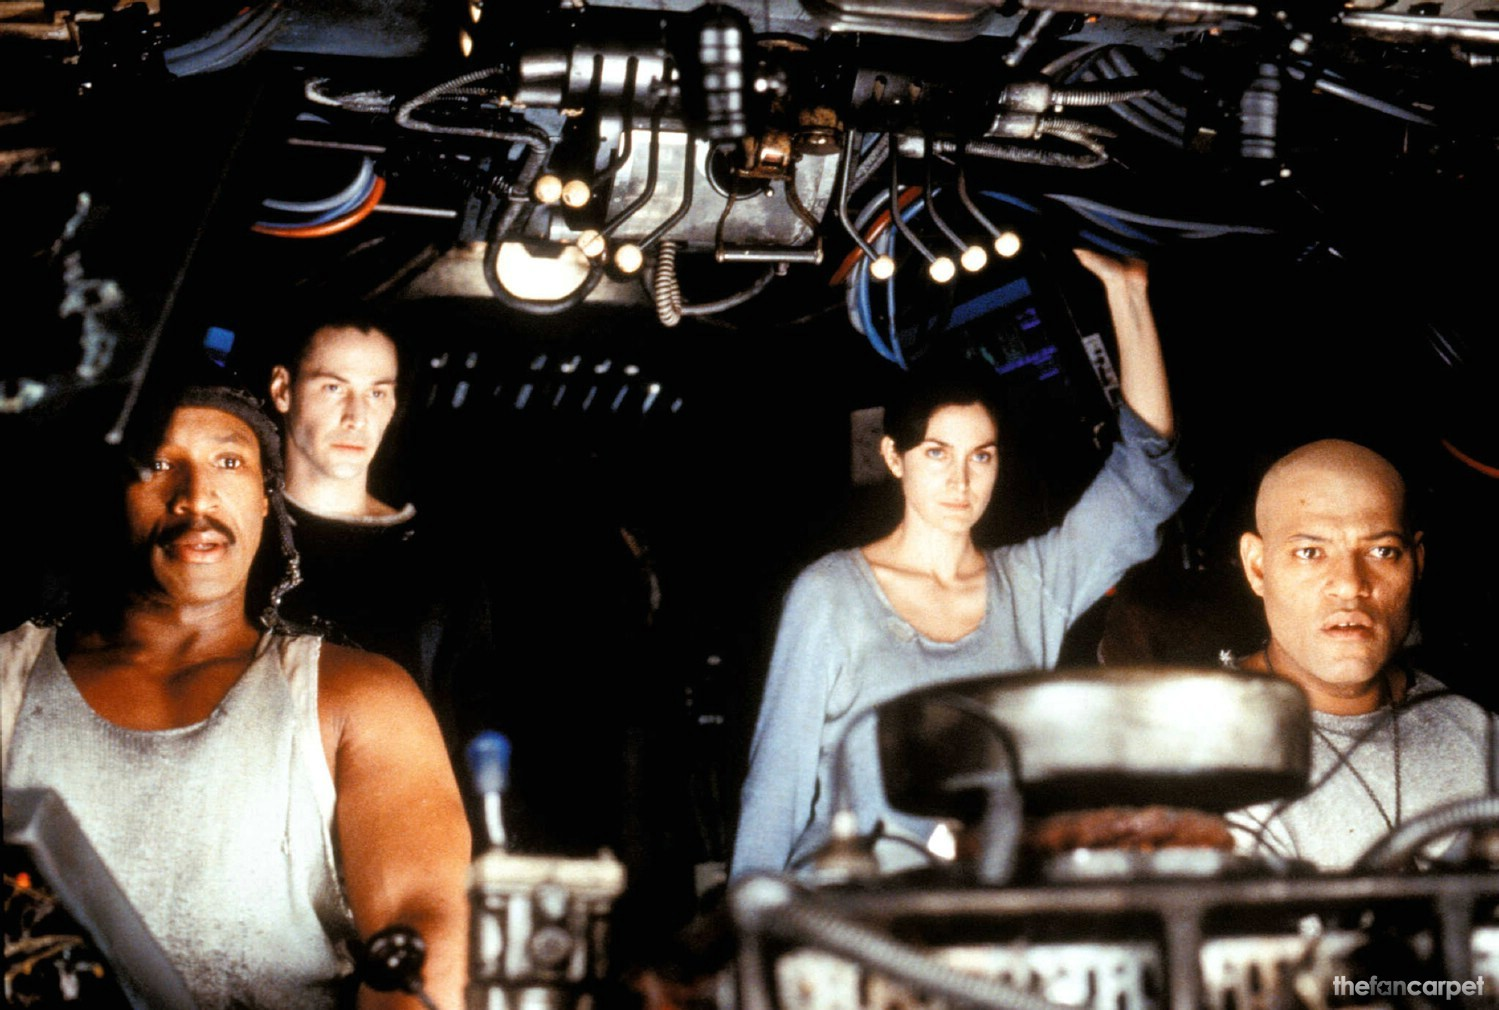 Carrie-Anne Moss,Keanu Reeves,Laurence Fishburne